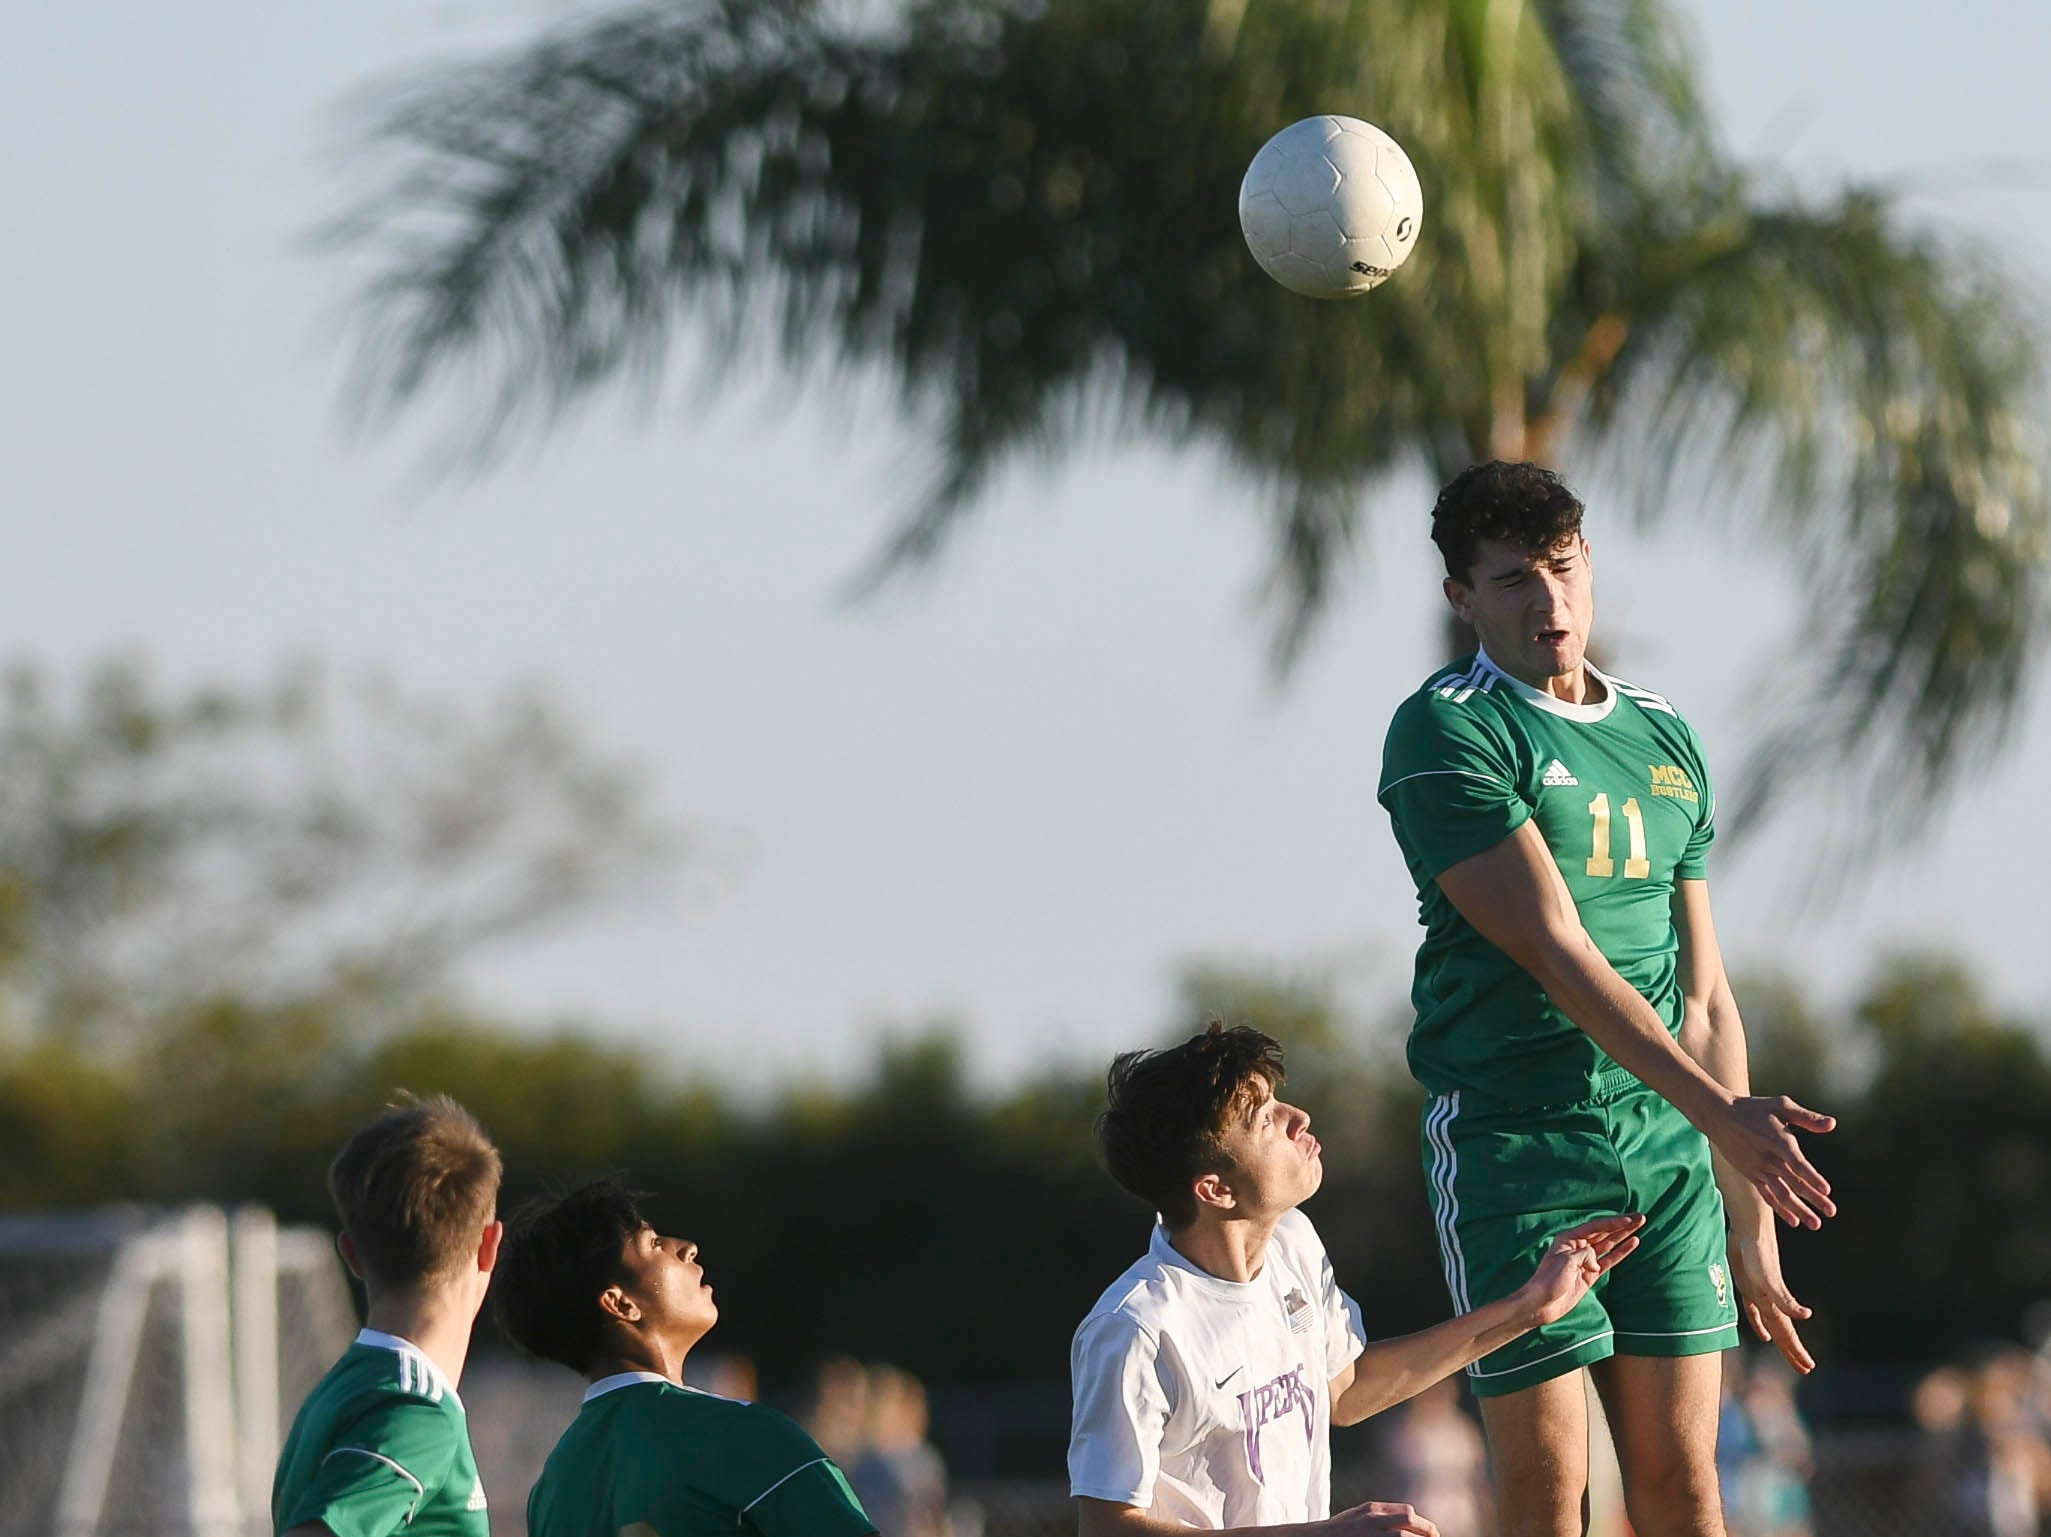 MCC's Kyle McBride heads the ball during Tuesday's District 8, Class 2A semifinal against Space Coast.